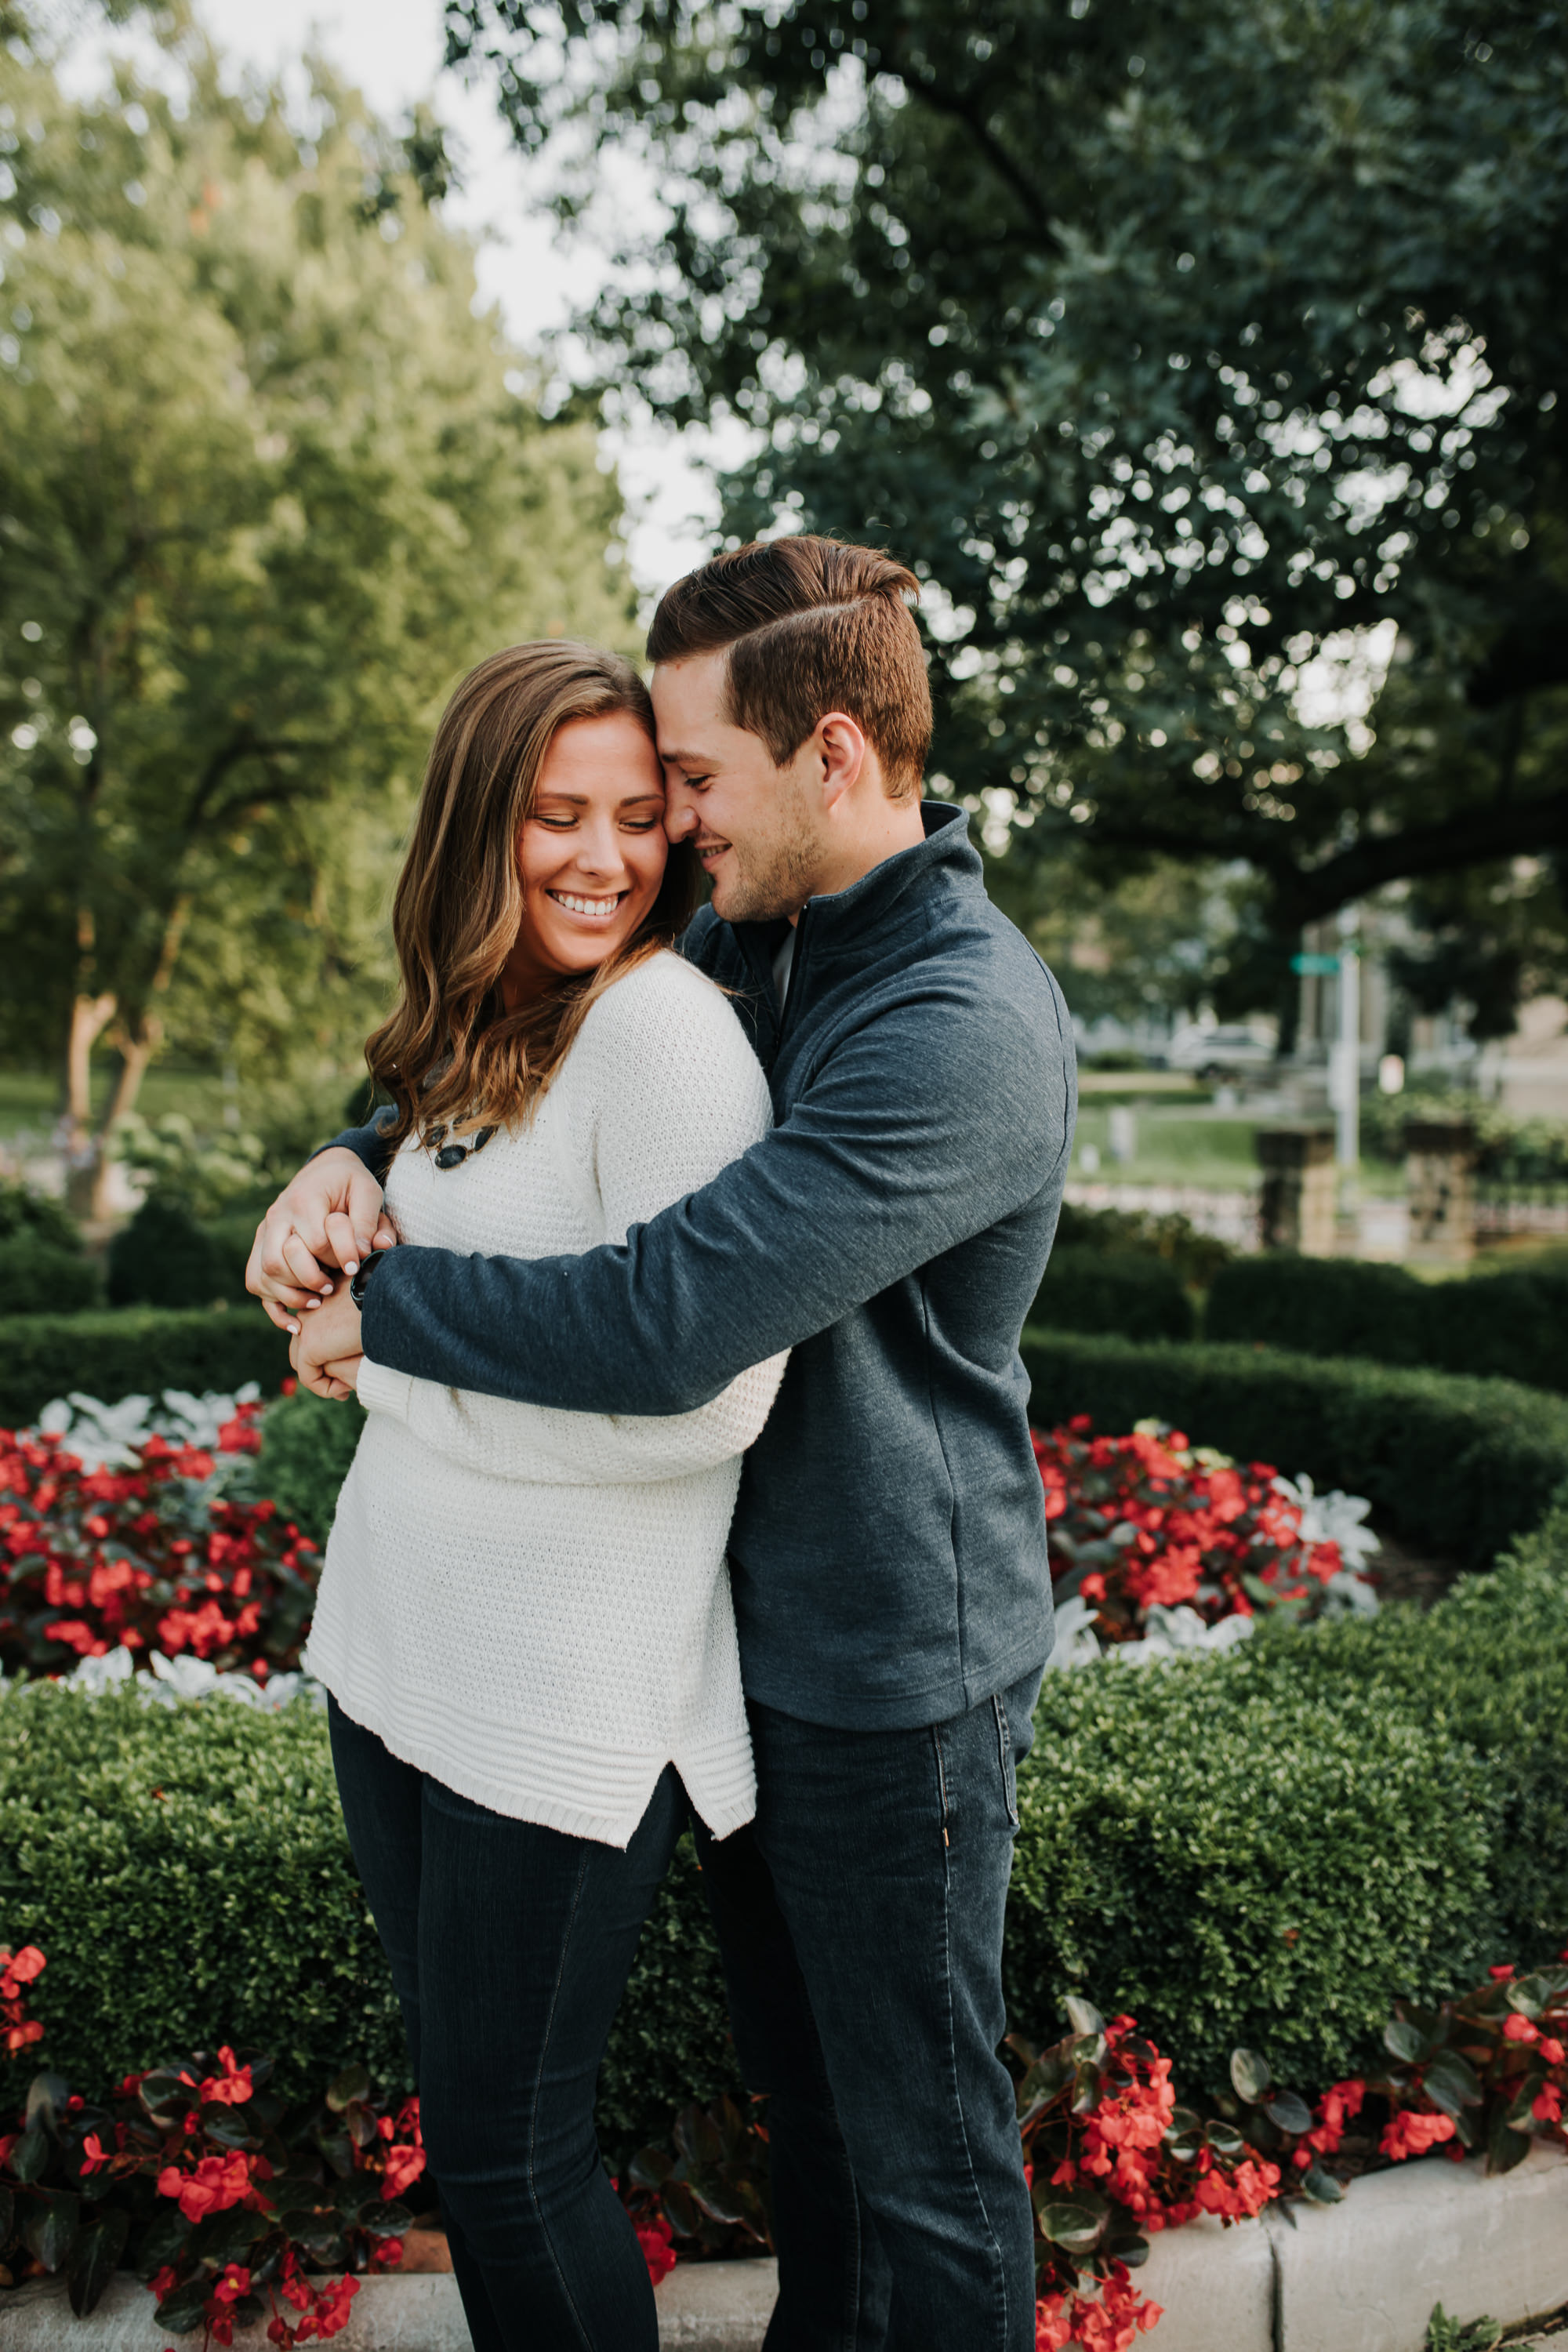 Michelle & Sam - Engaged - Nathaniel Jensen Photography - Omaha Nebraska Wedding Photograper - Omaha Nebraska Engagement Session-15.jpg